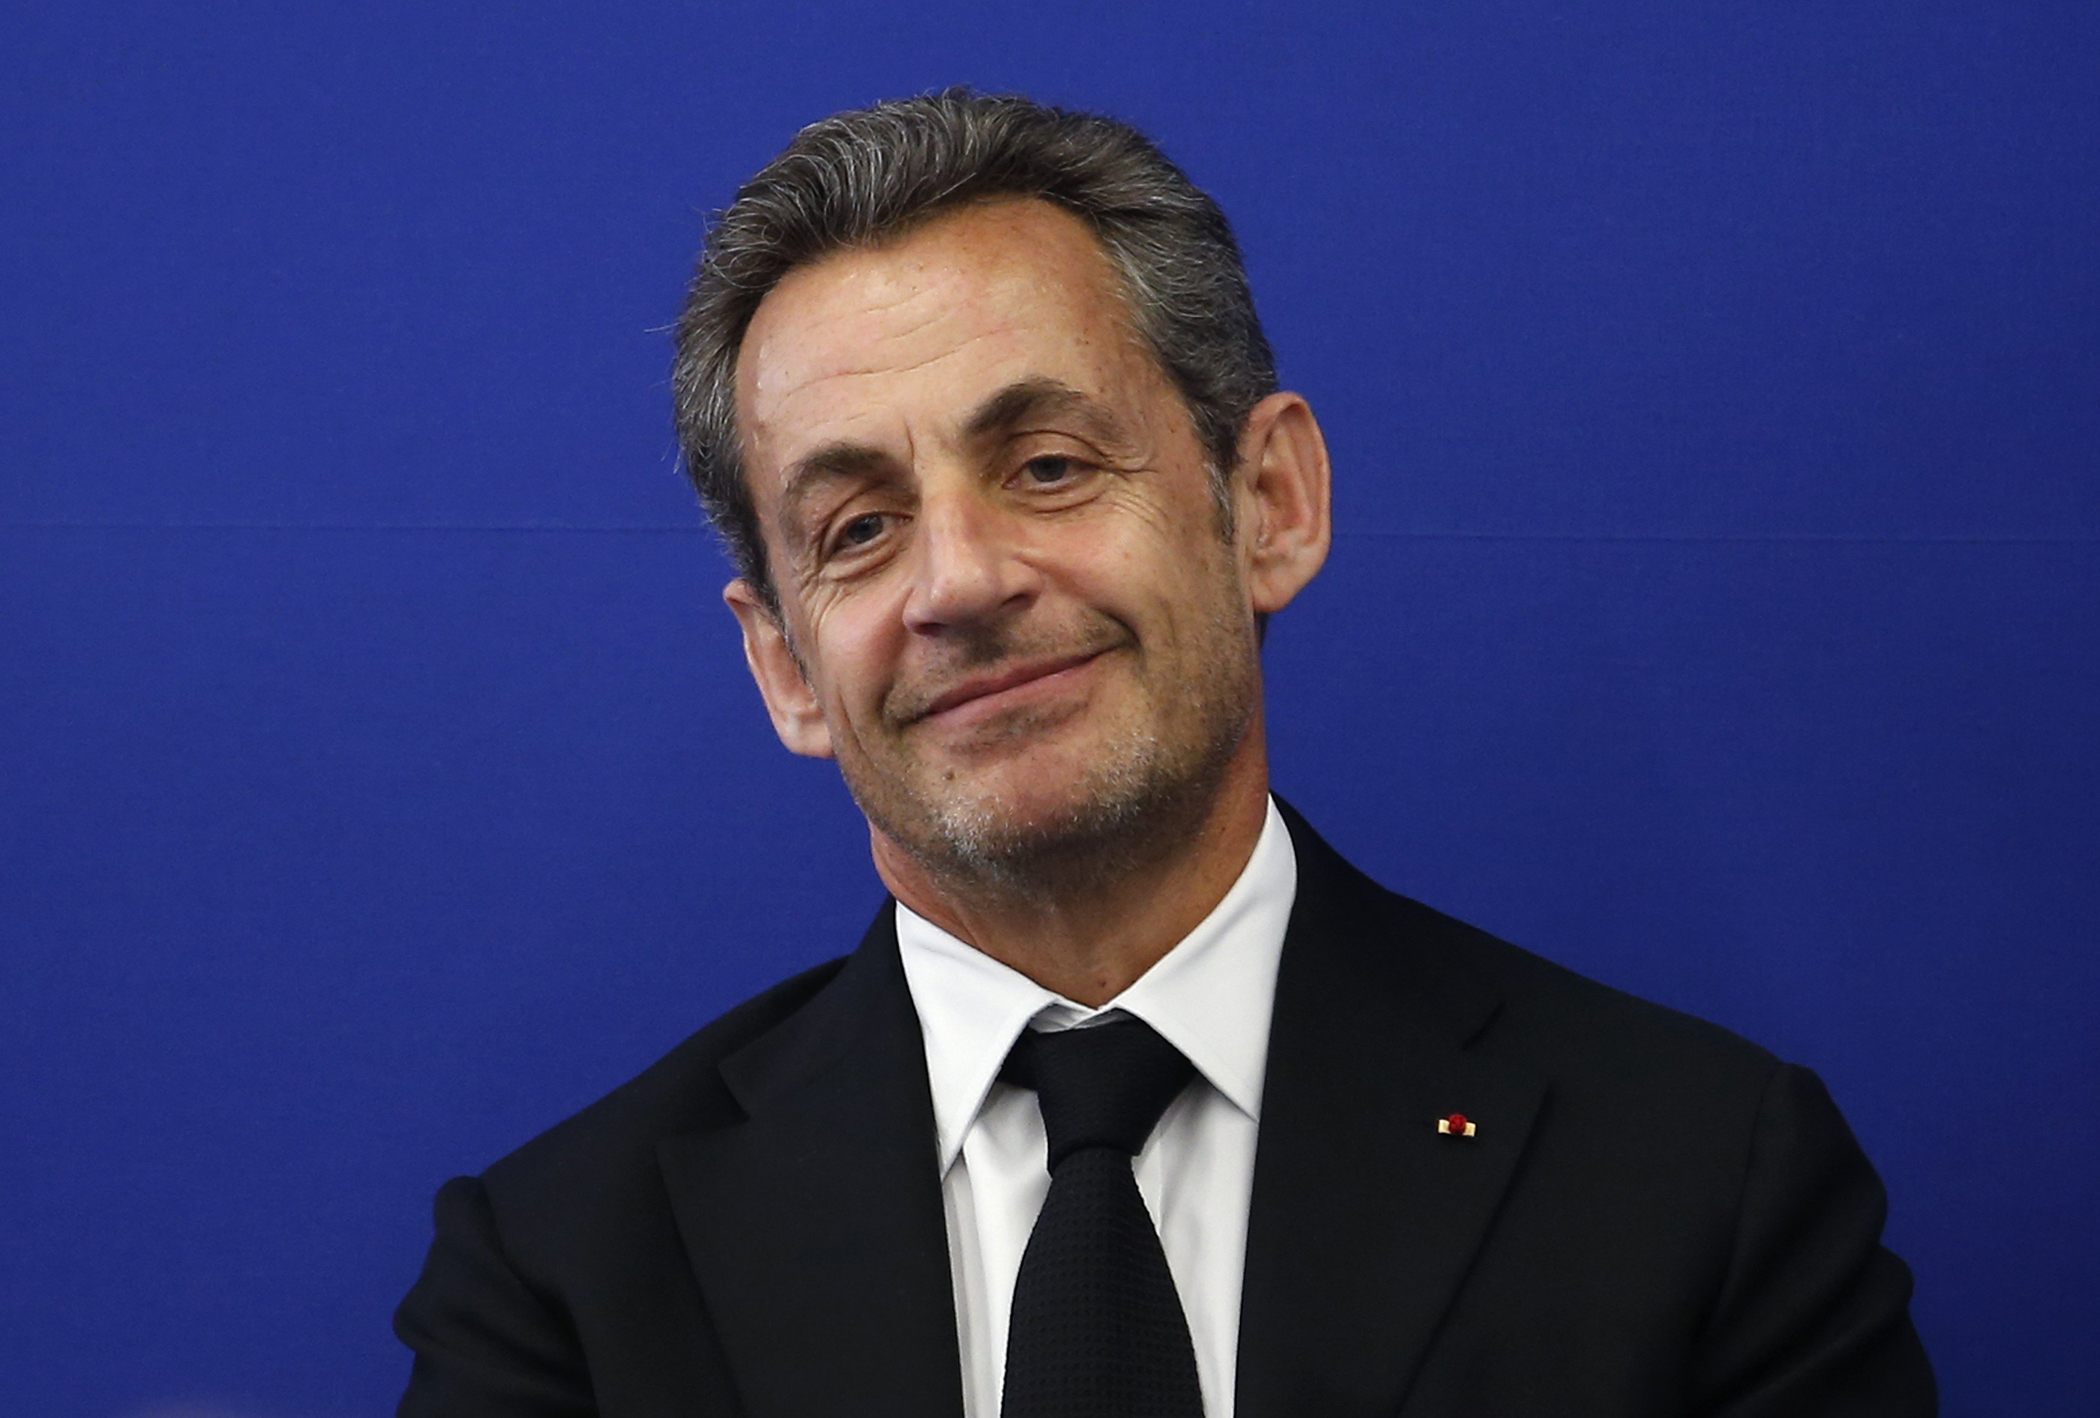 Former French President Nicolas Sarkozy attends the inauguration of the Institut Claude Pompidou in Nice in March 2014.